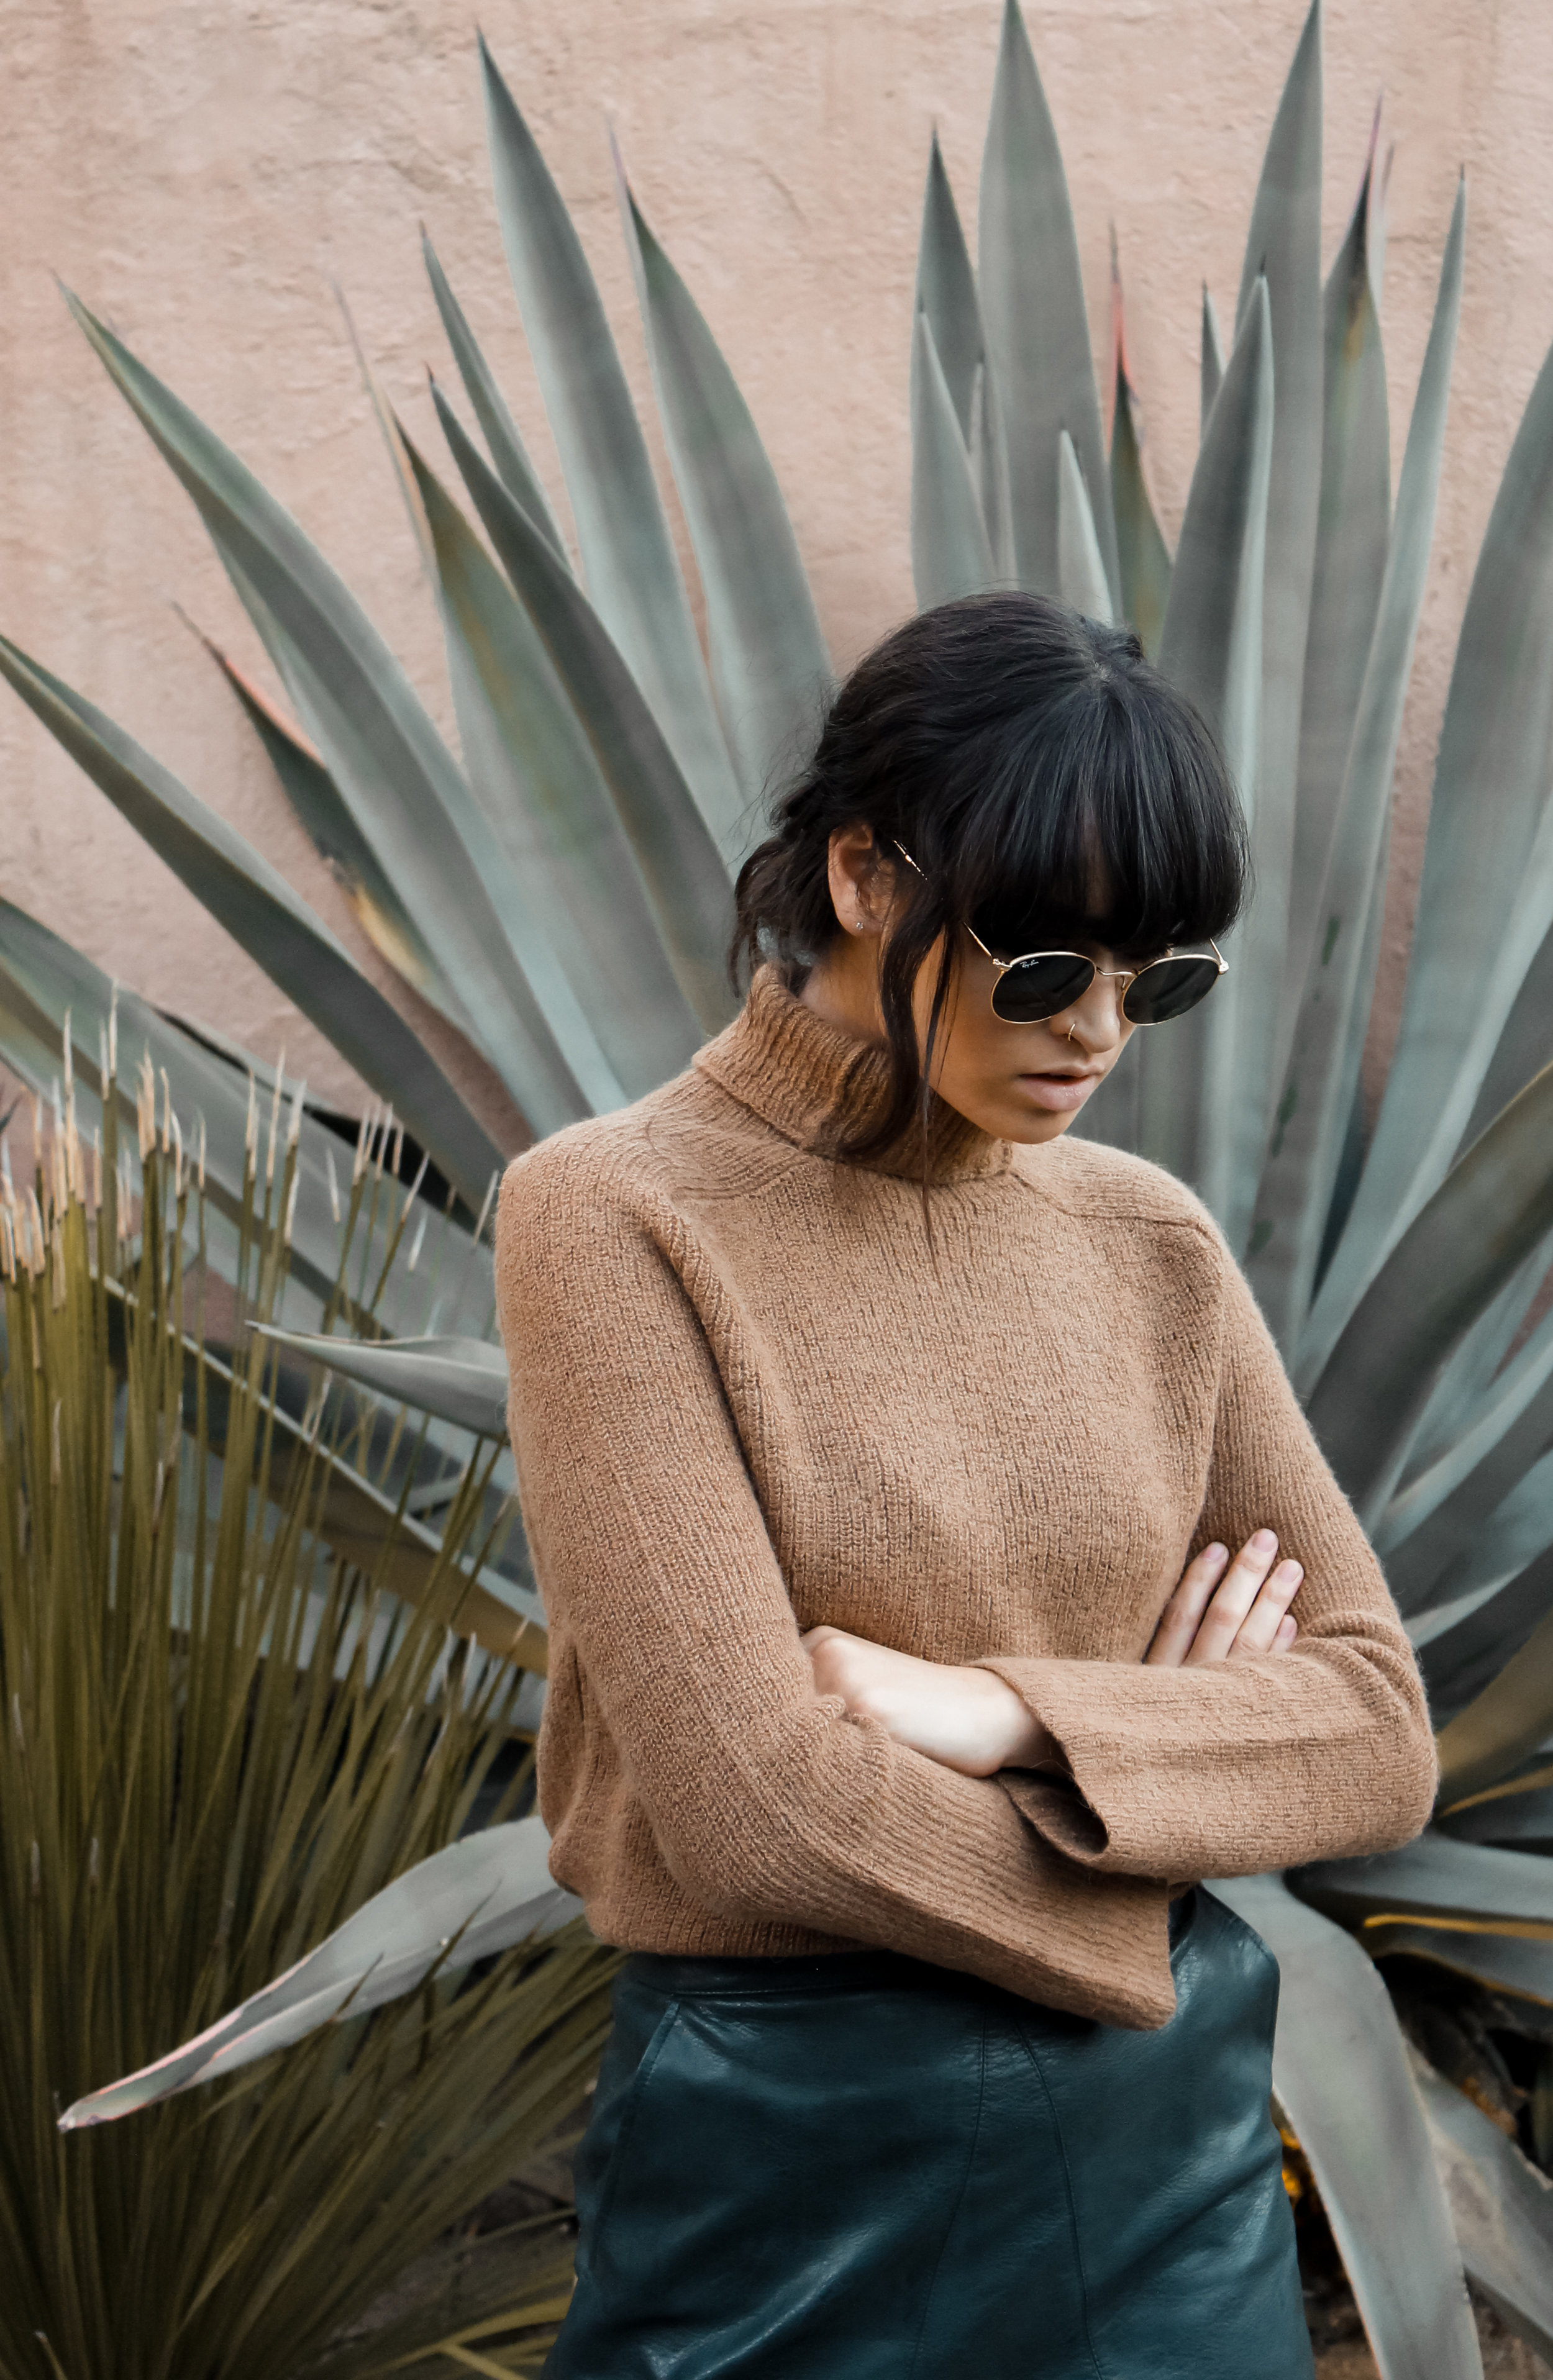 caitlin_miyako_taylor_zara_leather_mini_skirt_reformation_fuzzy_turtleneck_sweater